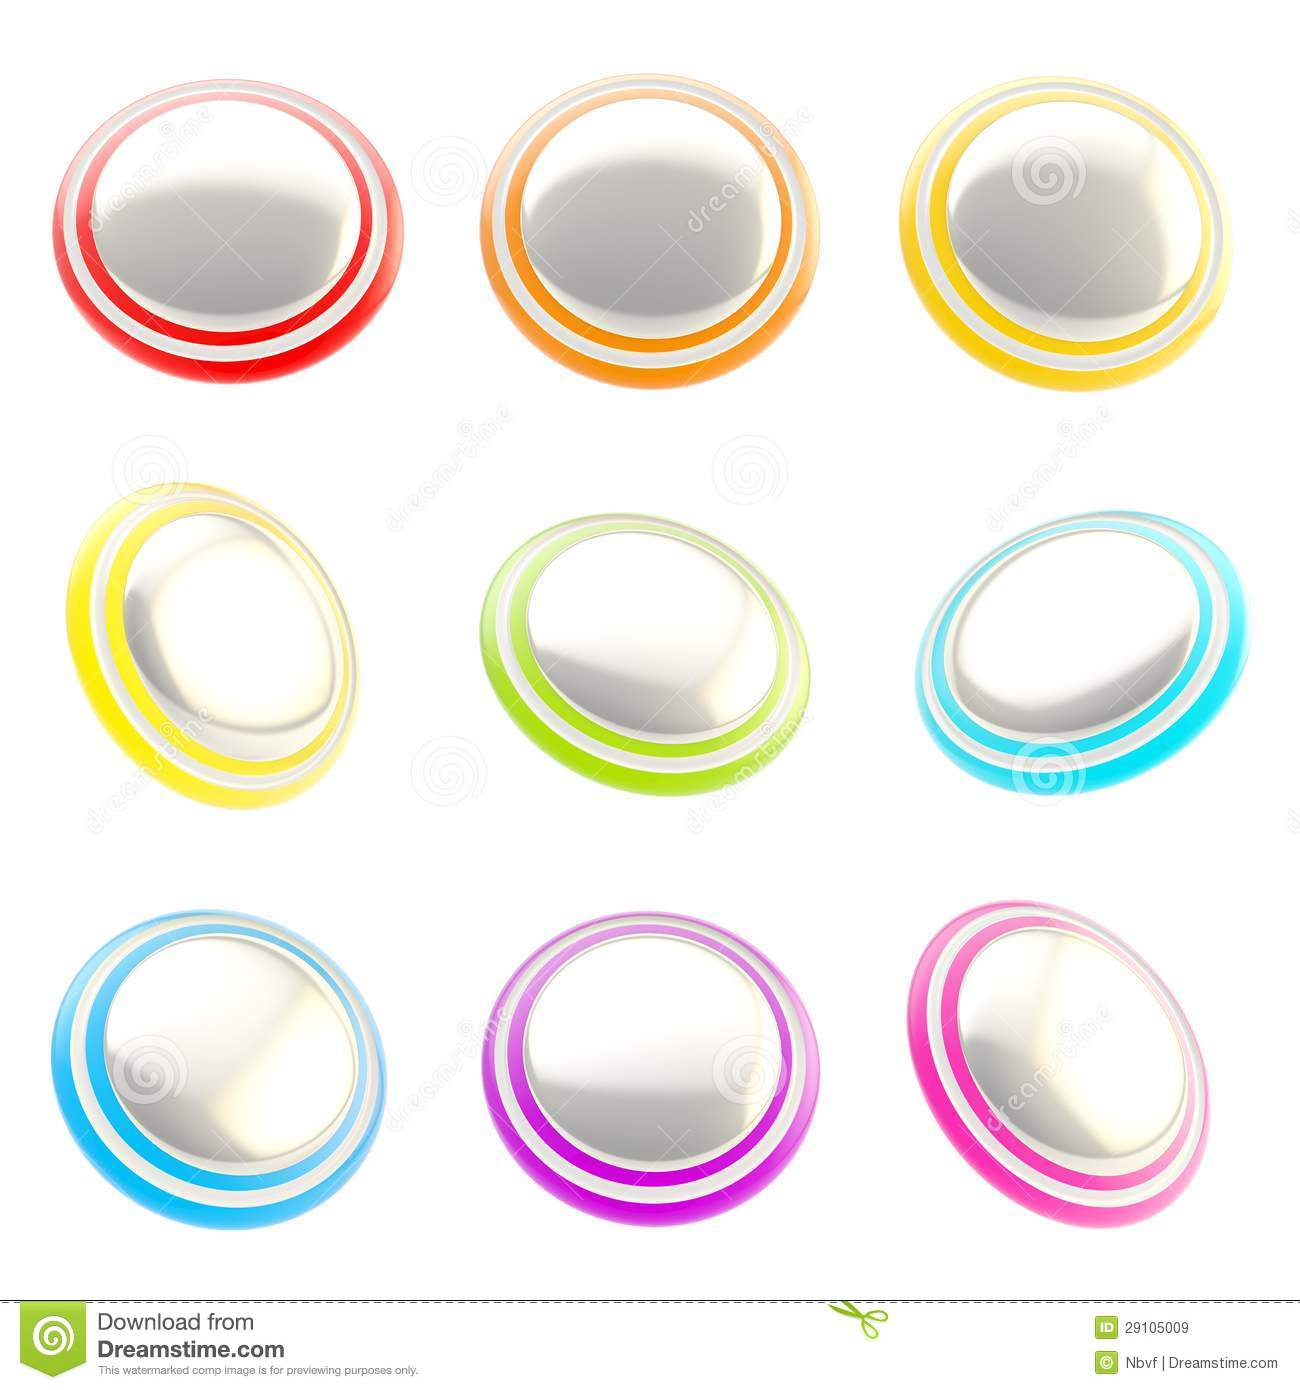 Chrome and rainbow colored glossy plastic round buttons